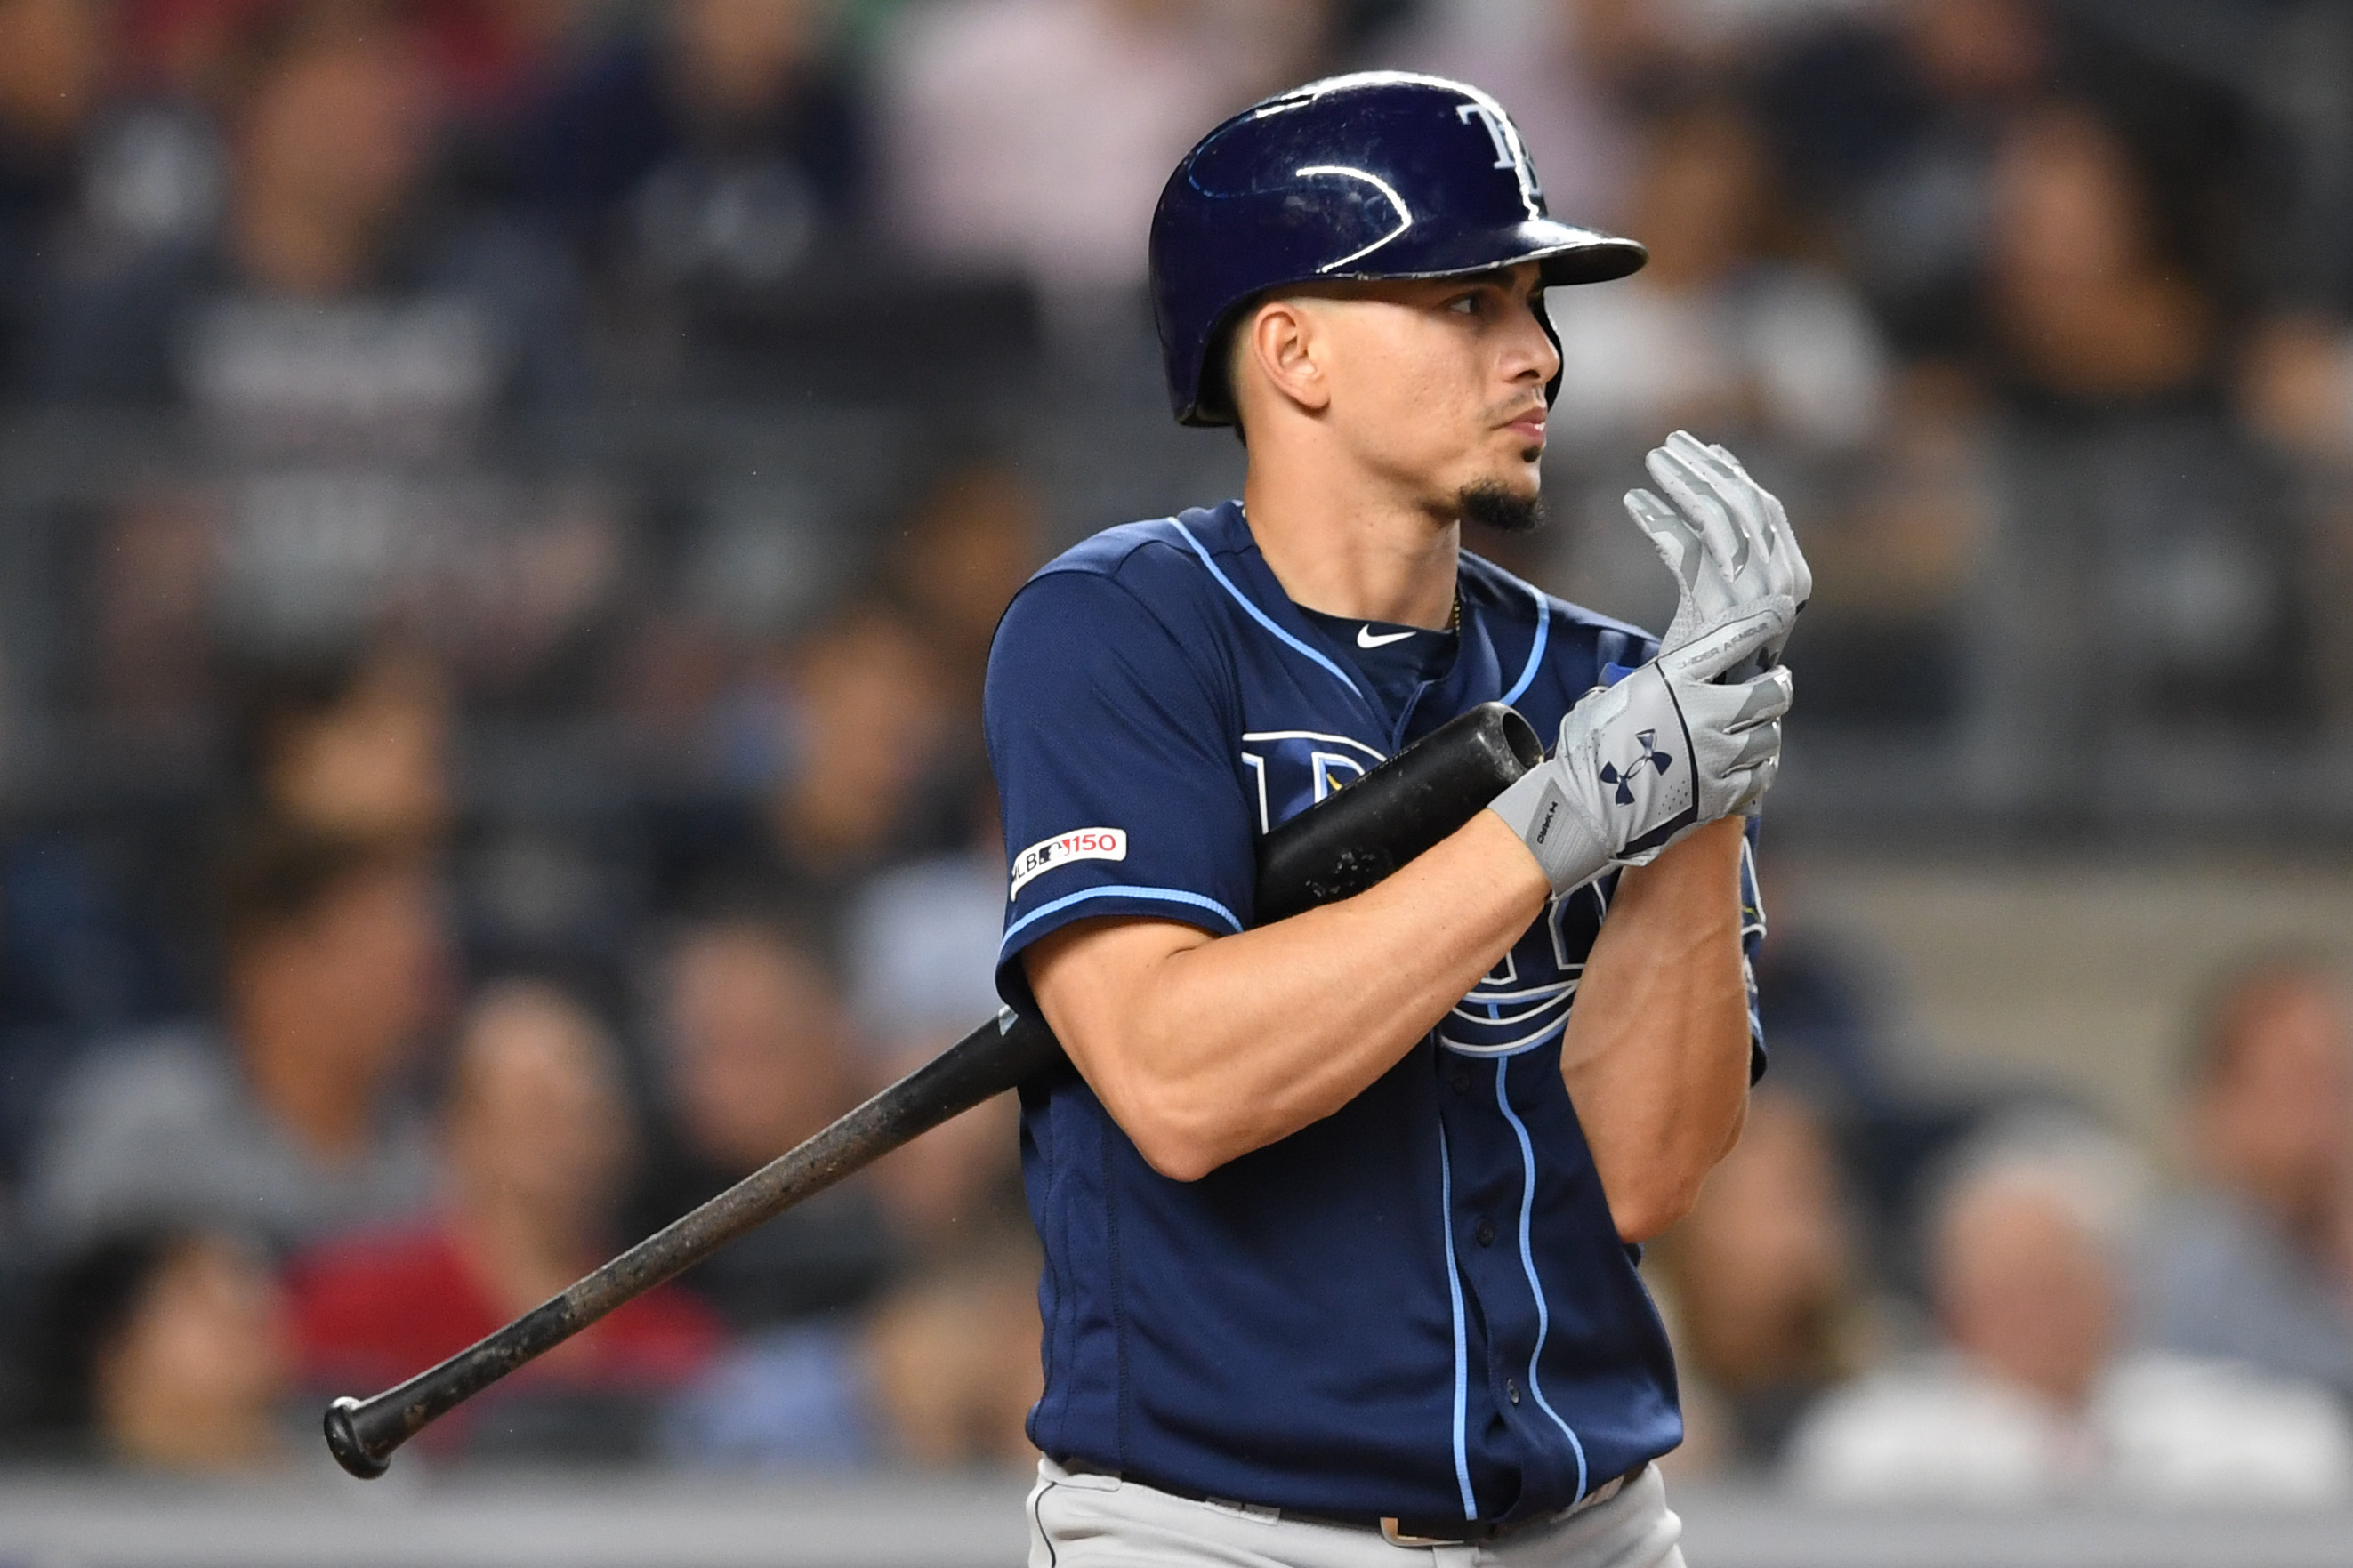 Willy Adames #1 of the Tampa Bay Rays adjusts his gloves during his at-bat during the third inning of game two of a doubleheader against the Tampa Bay Rays at Yankee Stadium on July 18, 2019 in the Bronx borough of New York City.